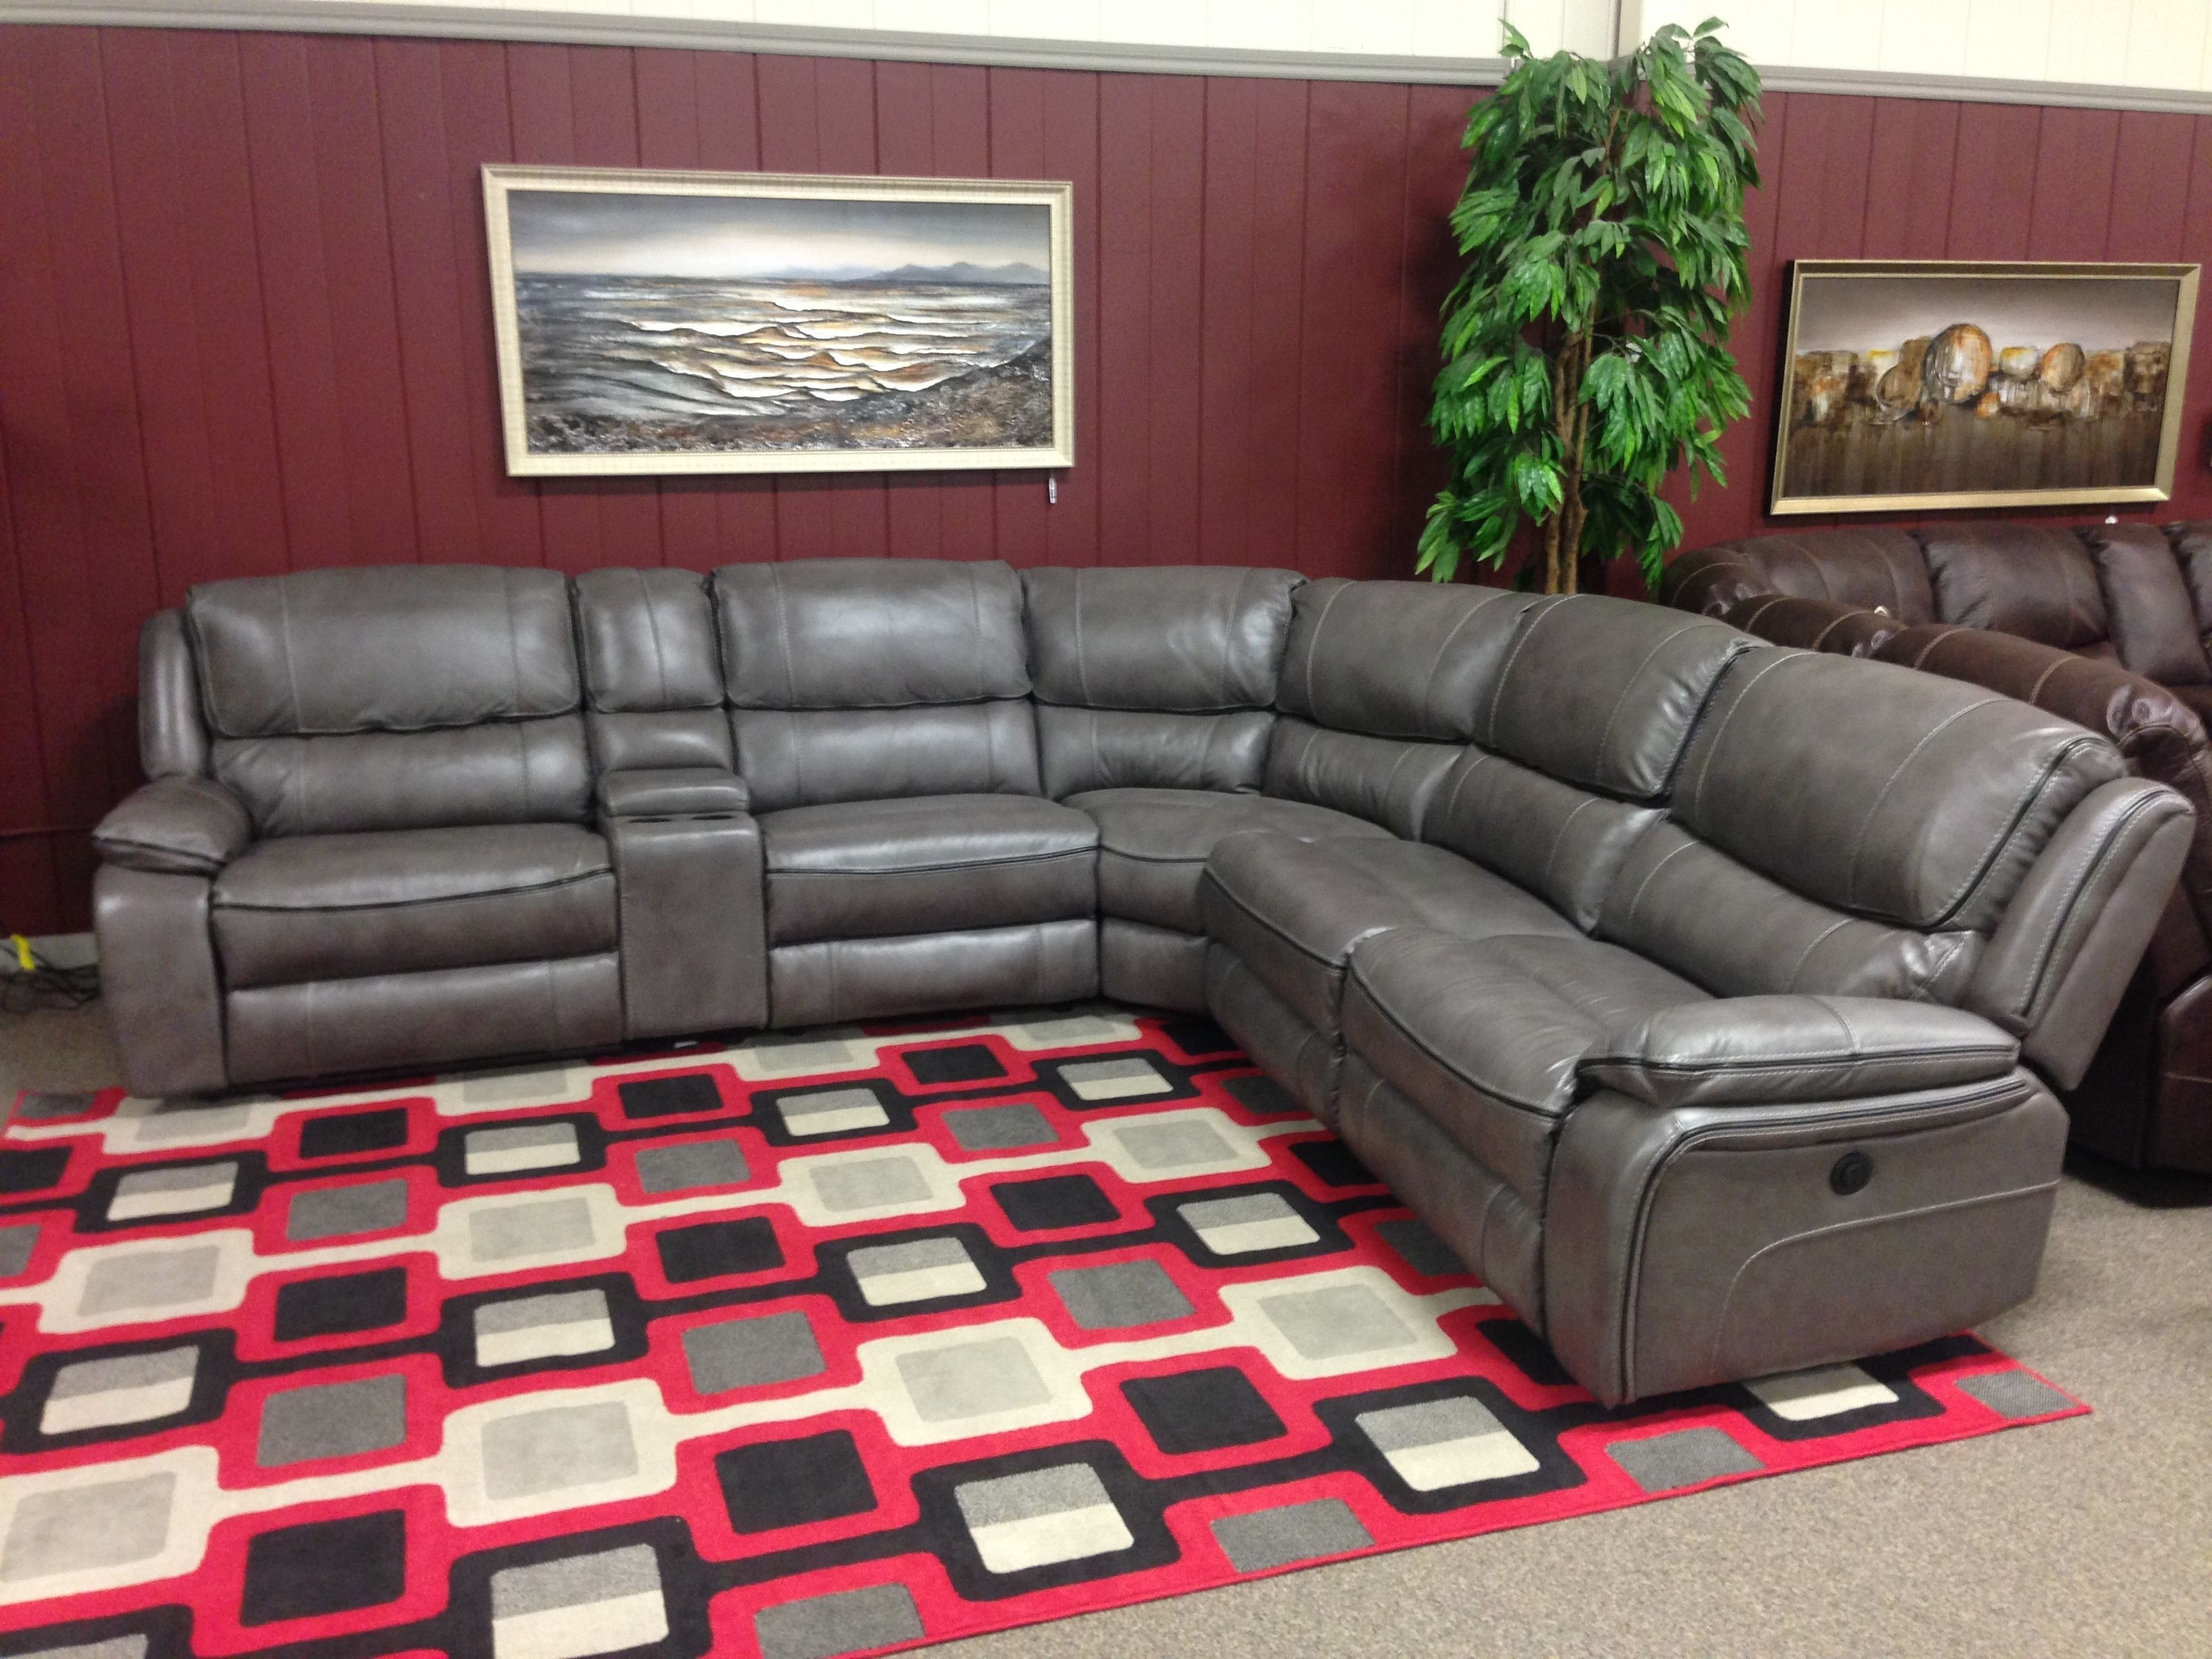 Grey Leather Reclining Sectional Travis Dk 6 Piece Power W Pwr Hdrst pertaining to Clyde Grey Leather 3 Piece Power Reclining Sectionals With Pwr Hdrst & Usb